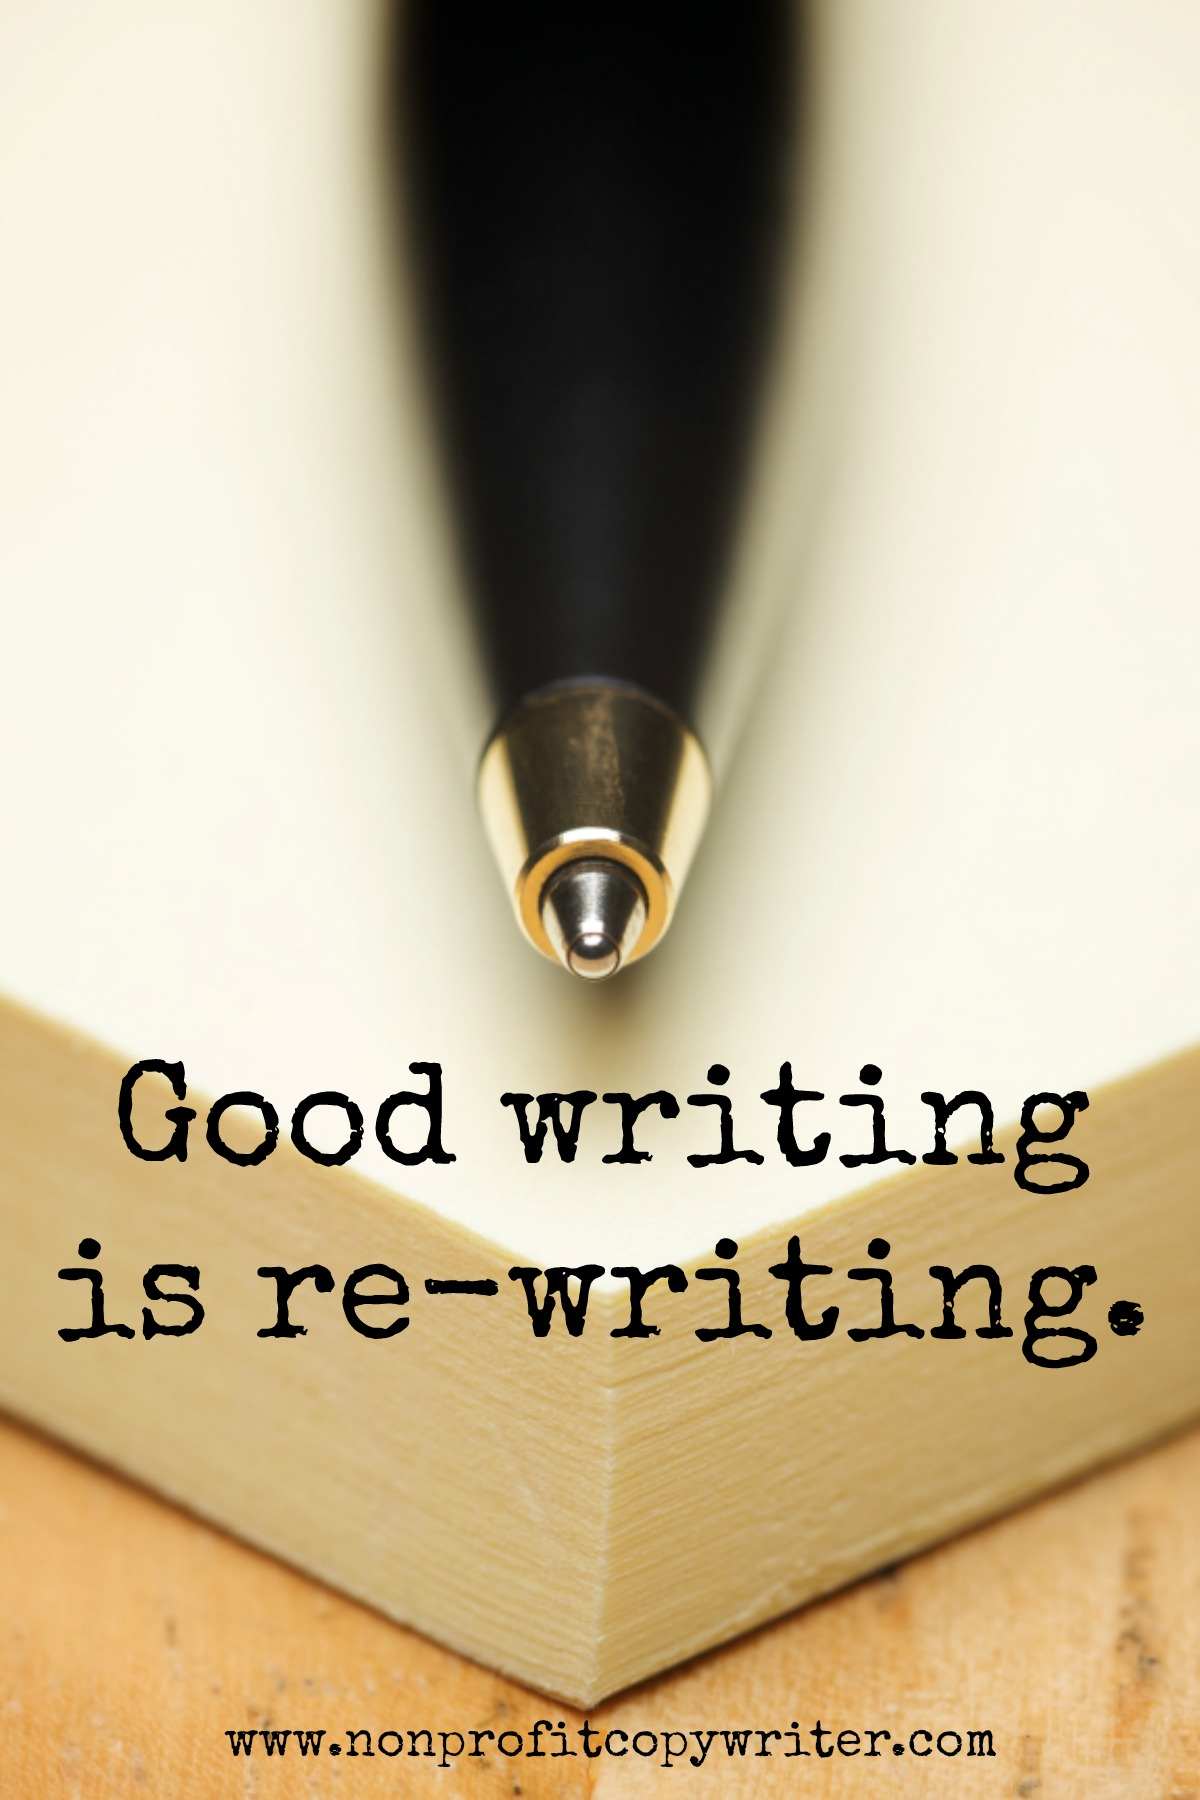 A wise word: good writing is re-writing